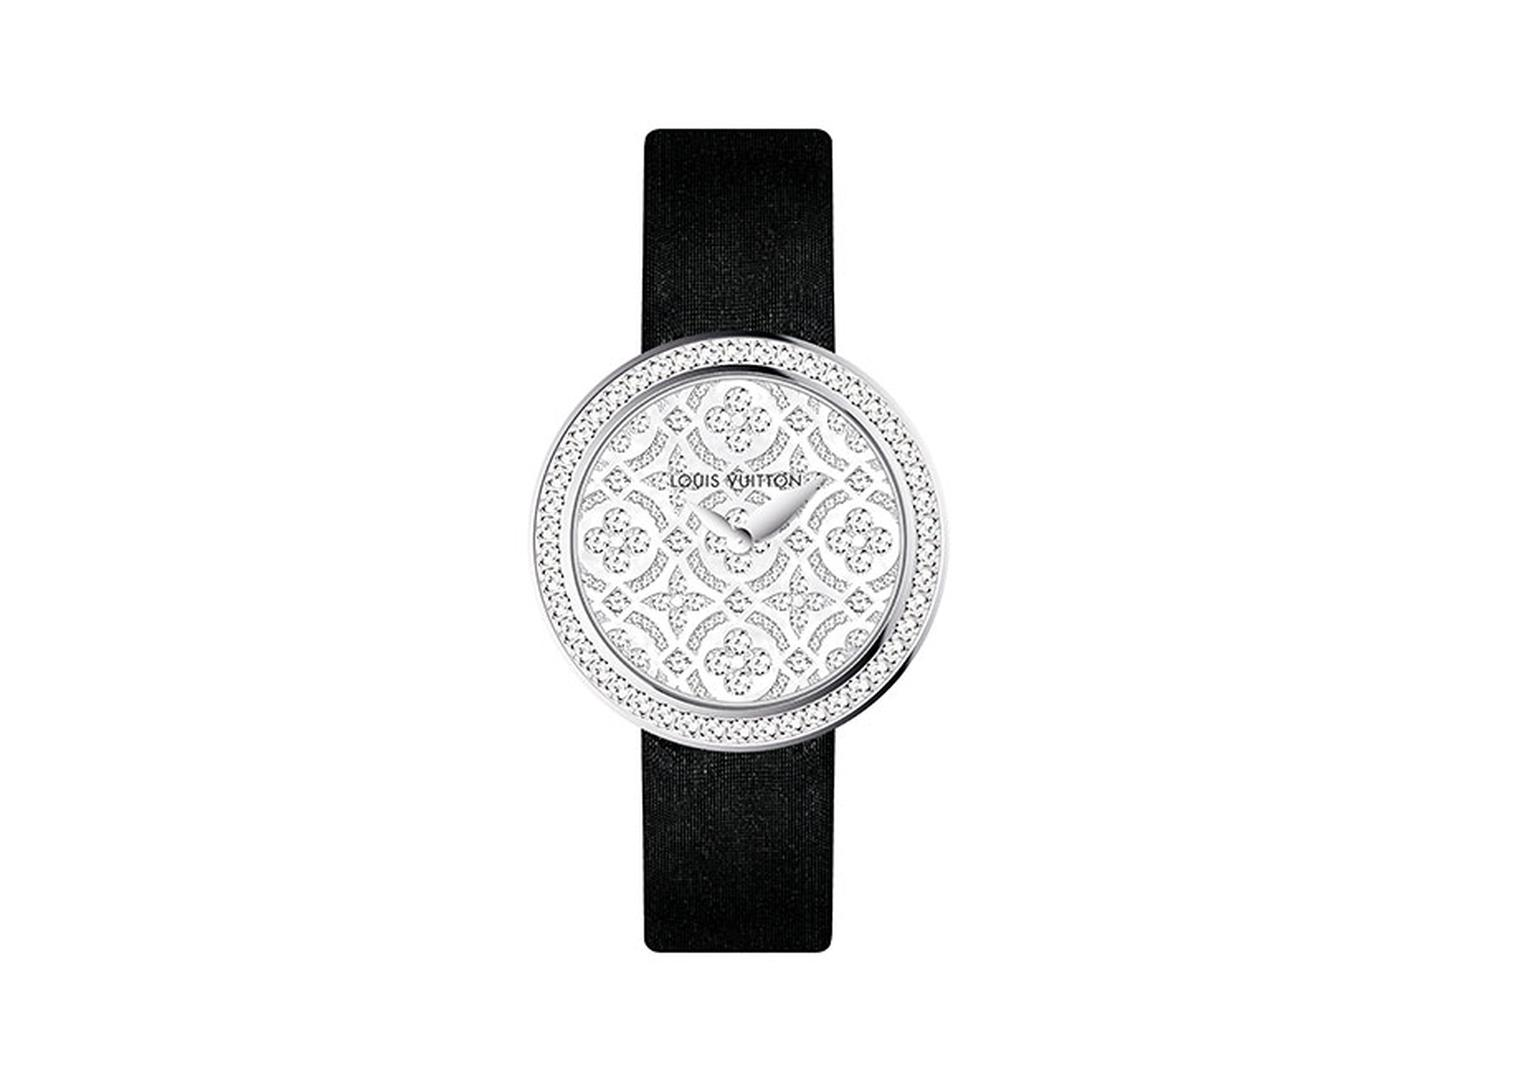 Dentelle de Monogram watch with a pearly white mother-of-pearl dial set with diamonds featuring the iconic Louis Vuitton flowers and stars motif, surrounded by a diamond-set bezel, and black satin strap